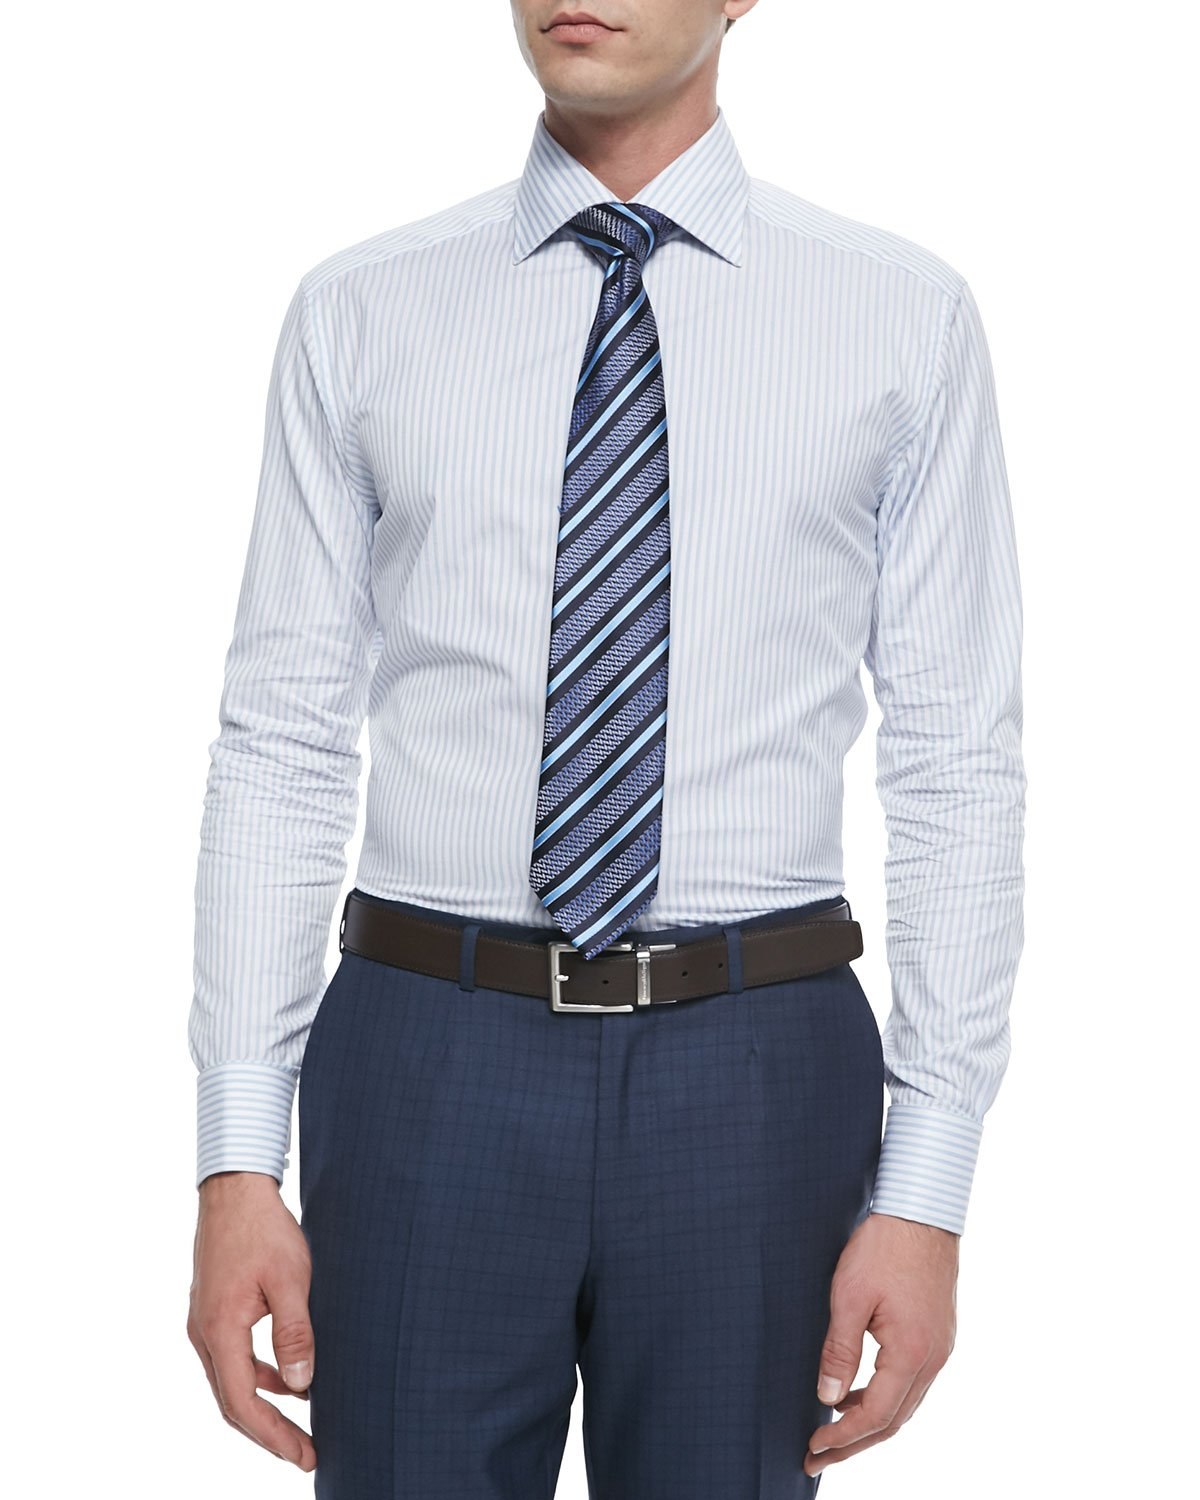 Lyst Ermenegildo Zegna Striped French Cuff Dress Shirt